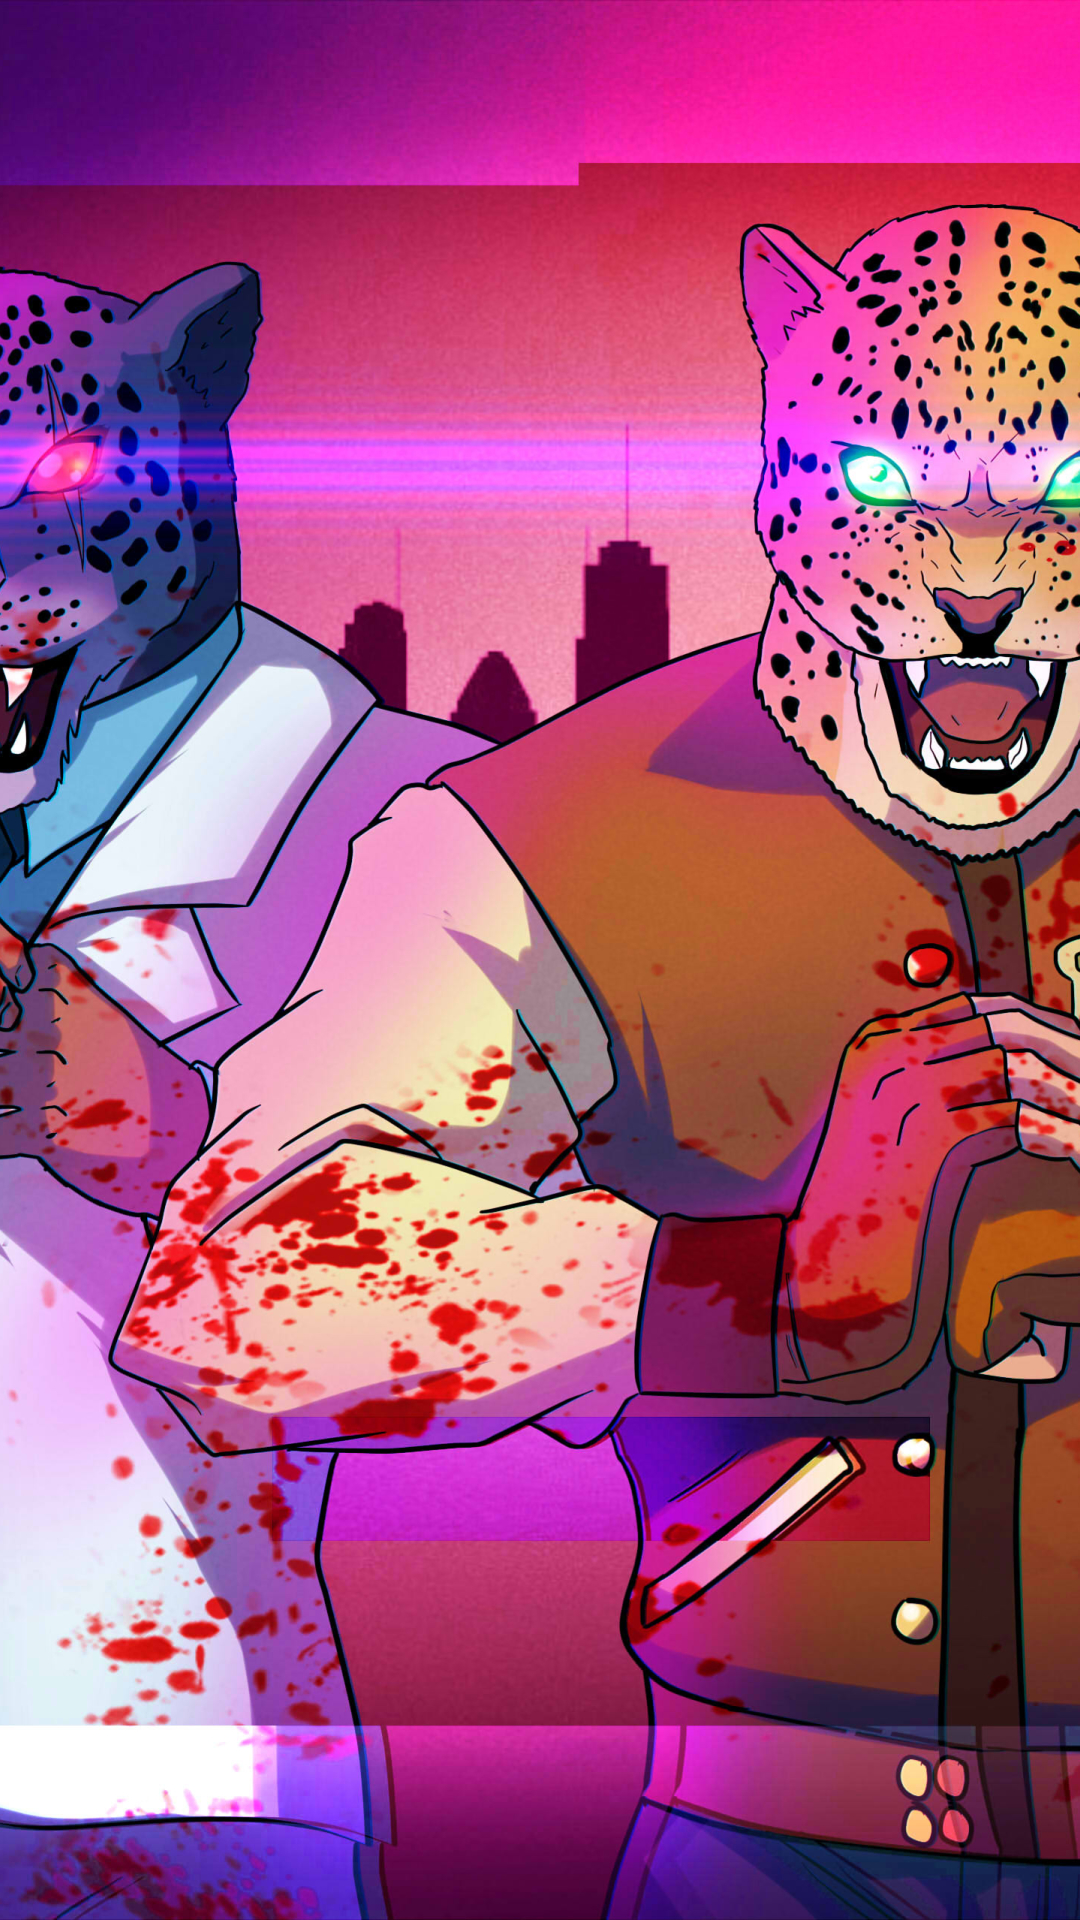 1080x1920 Tekken Hotline Miami Armor King Iphone 7 6s 6 Plus And Pixel Xl One Plus 3 3t 5 Wallpaper Hd Games 4k Wallpapers Images Photos And Background